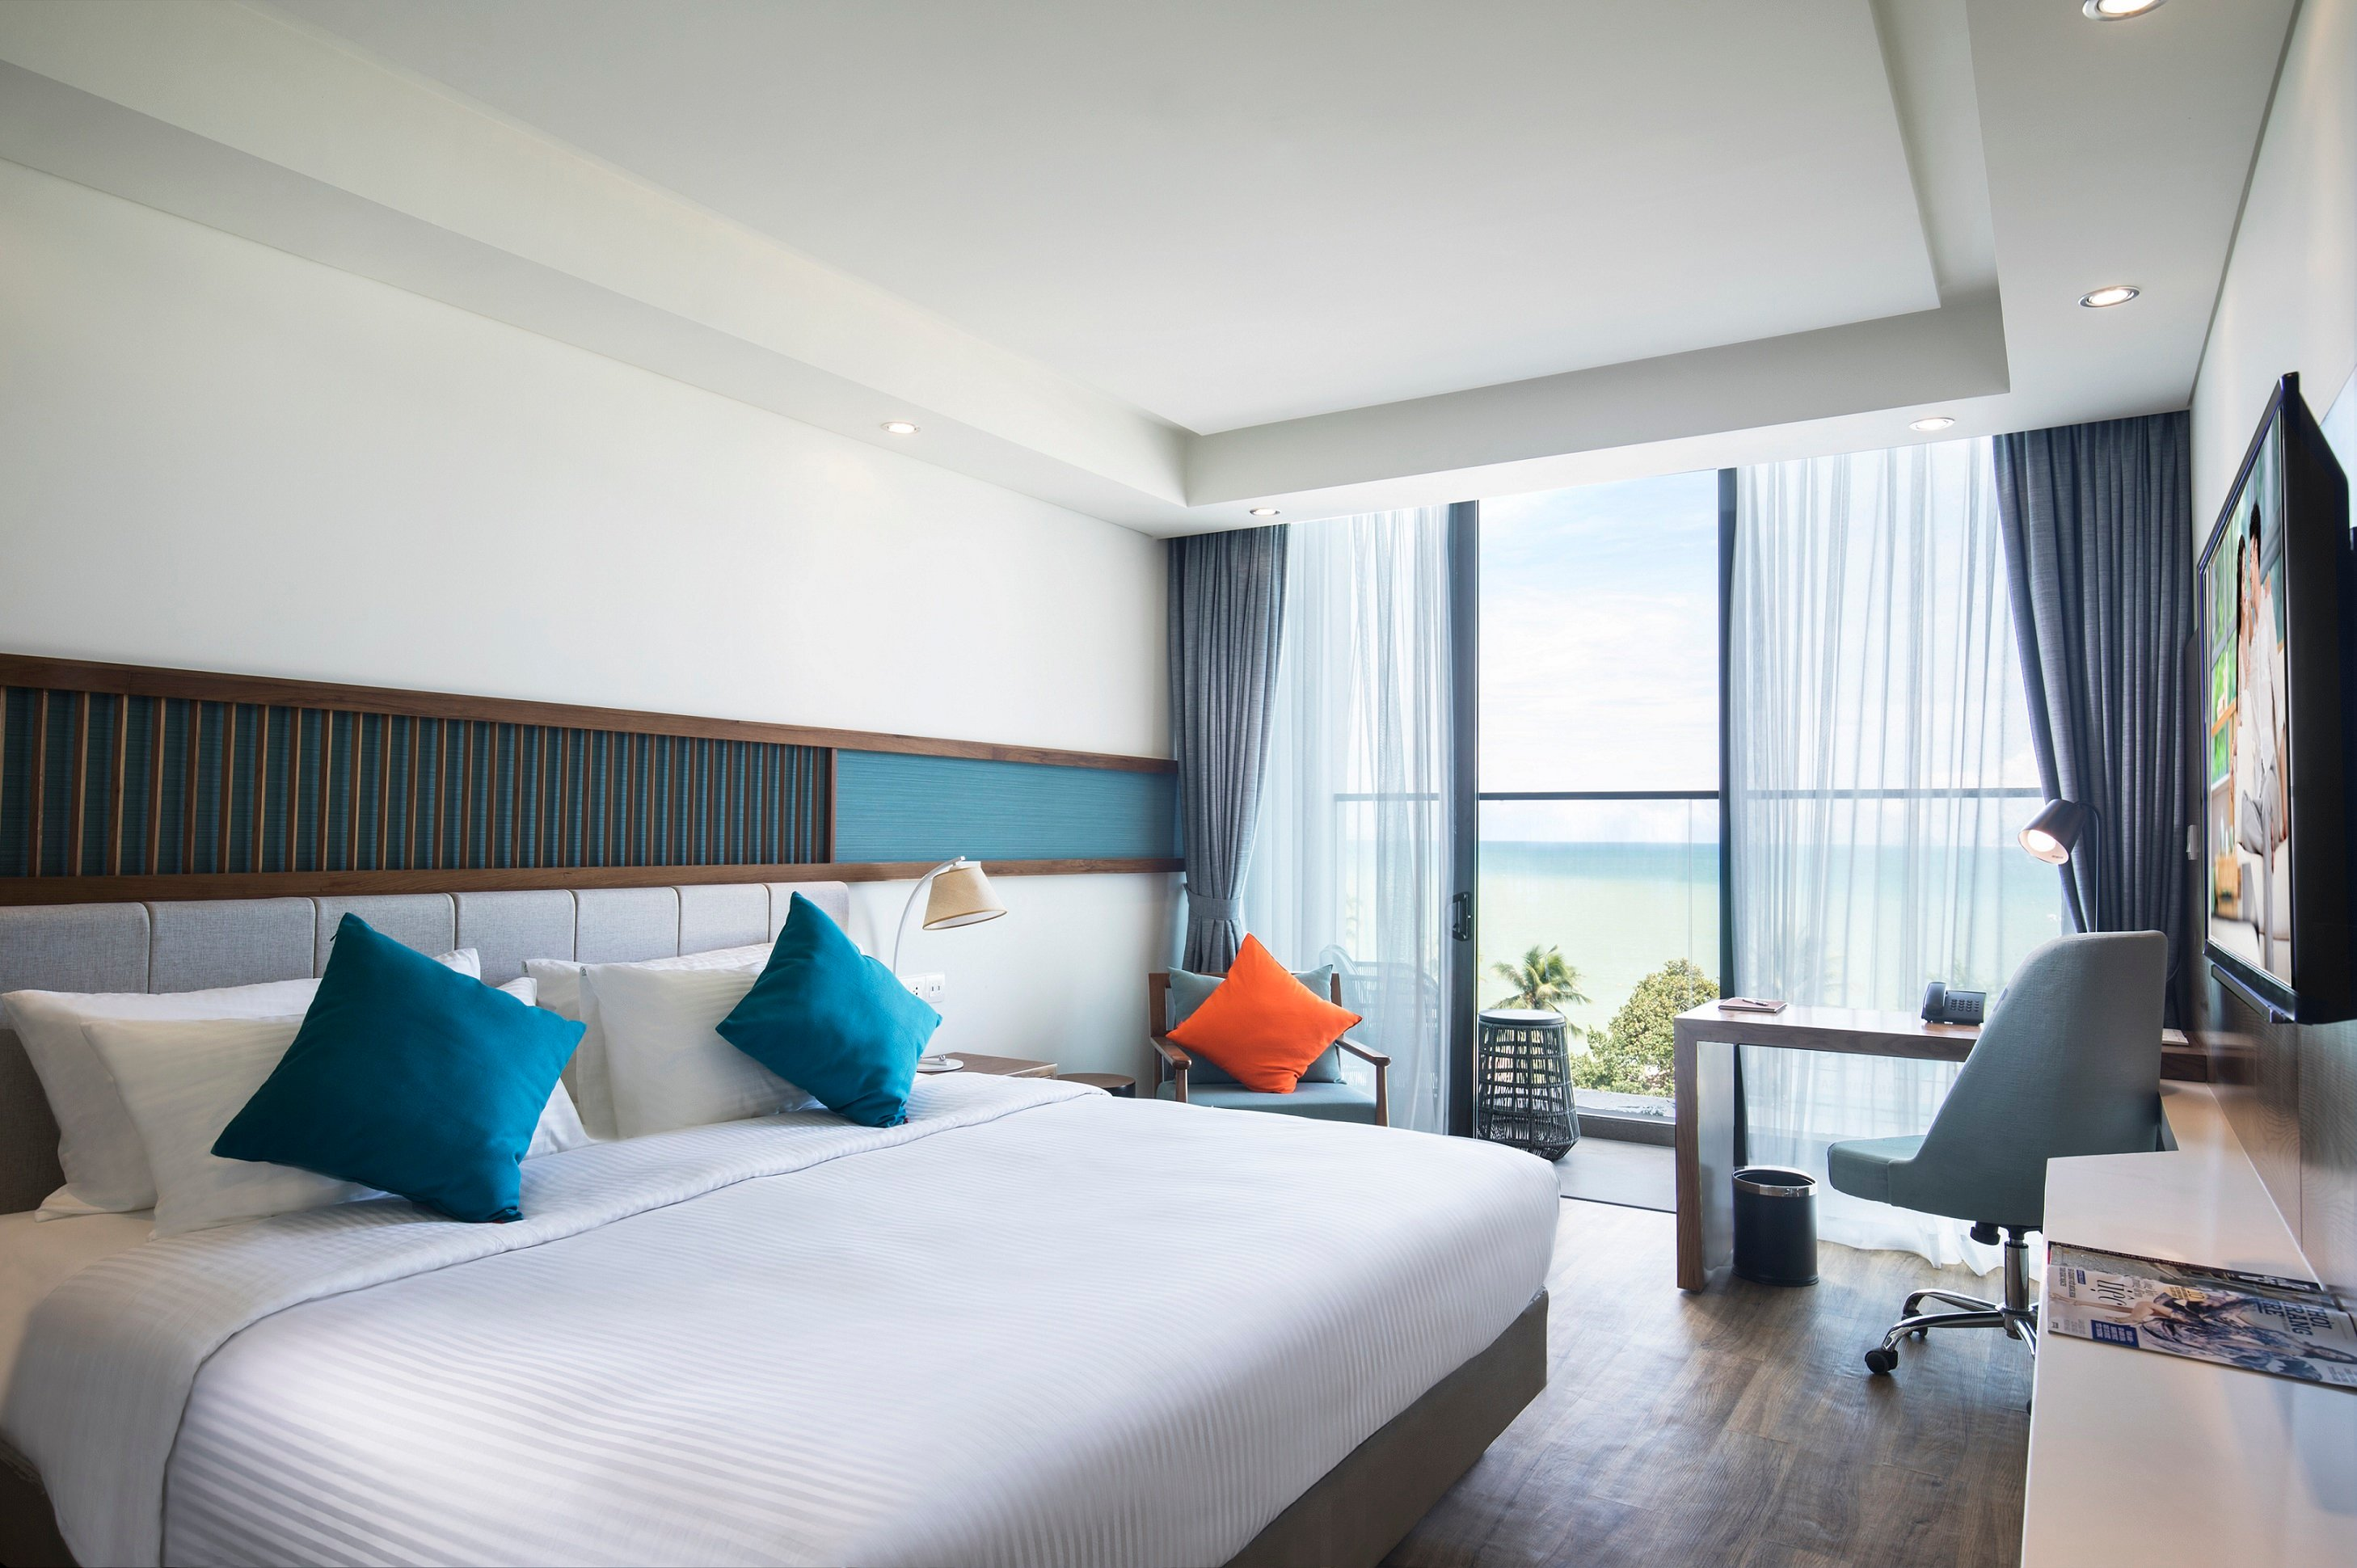 Ascott opens its first citadines apart 39 hotel in vietnam for Apart hotel citadines